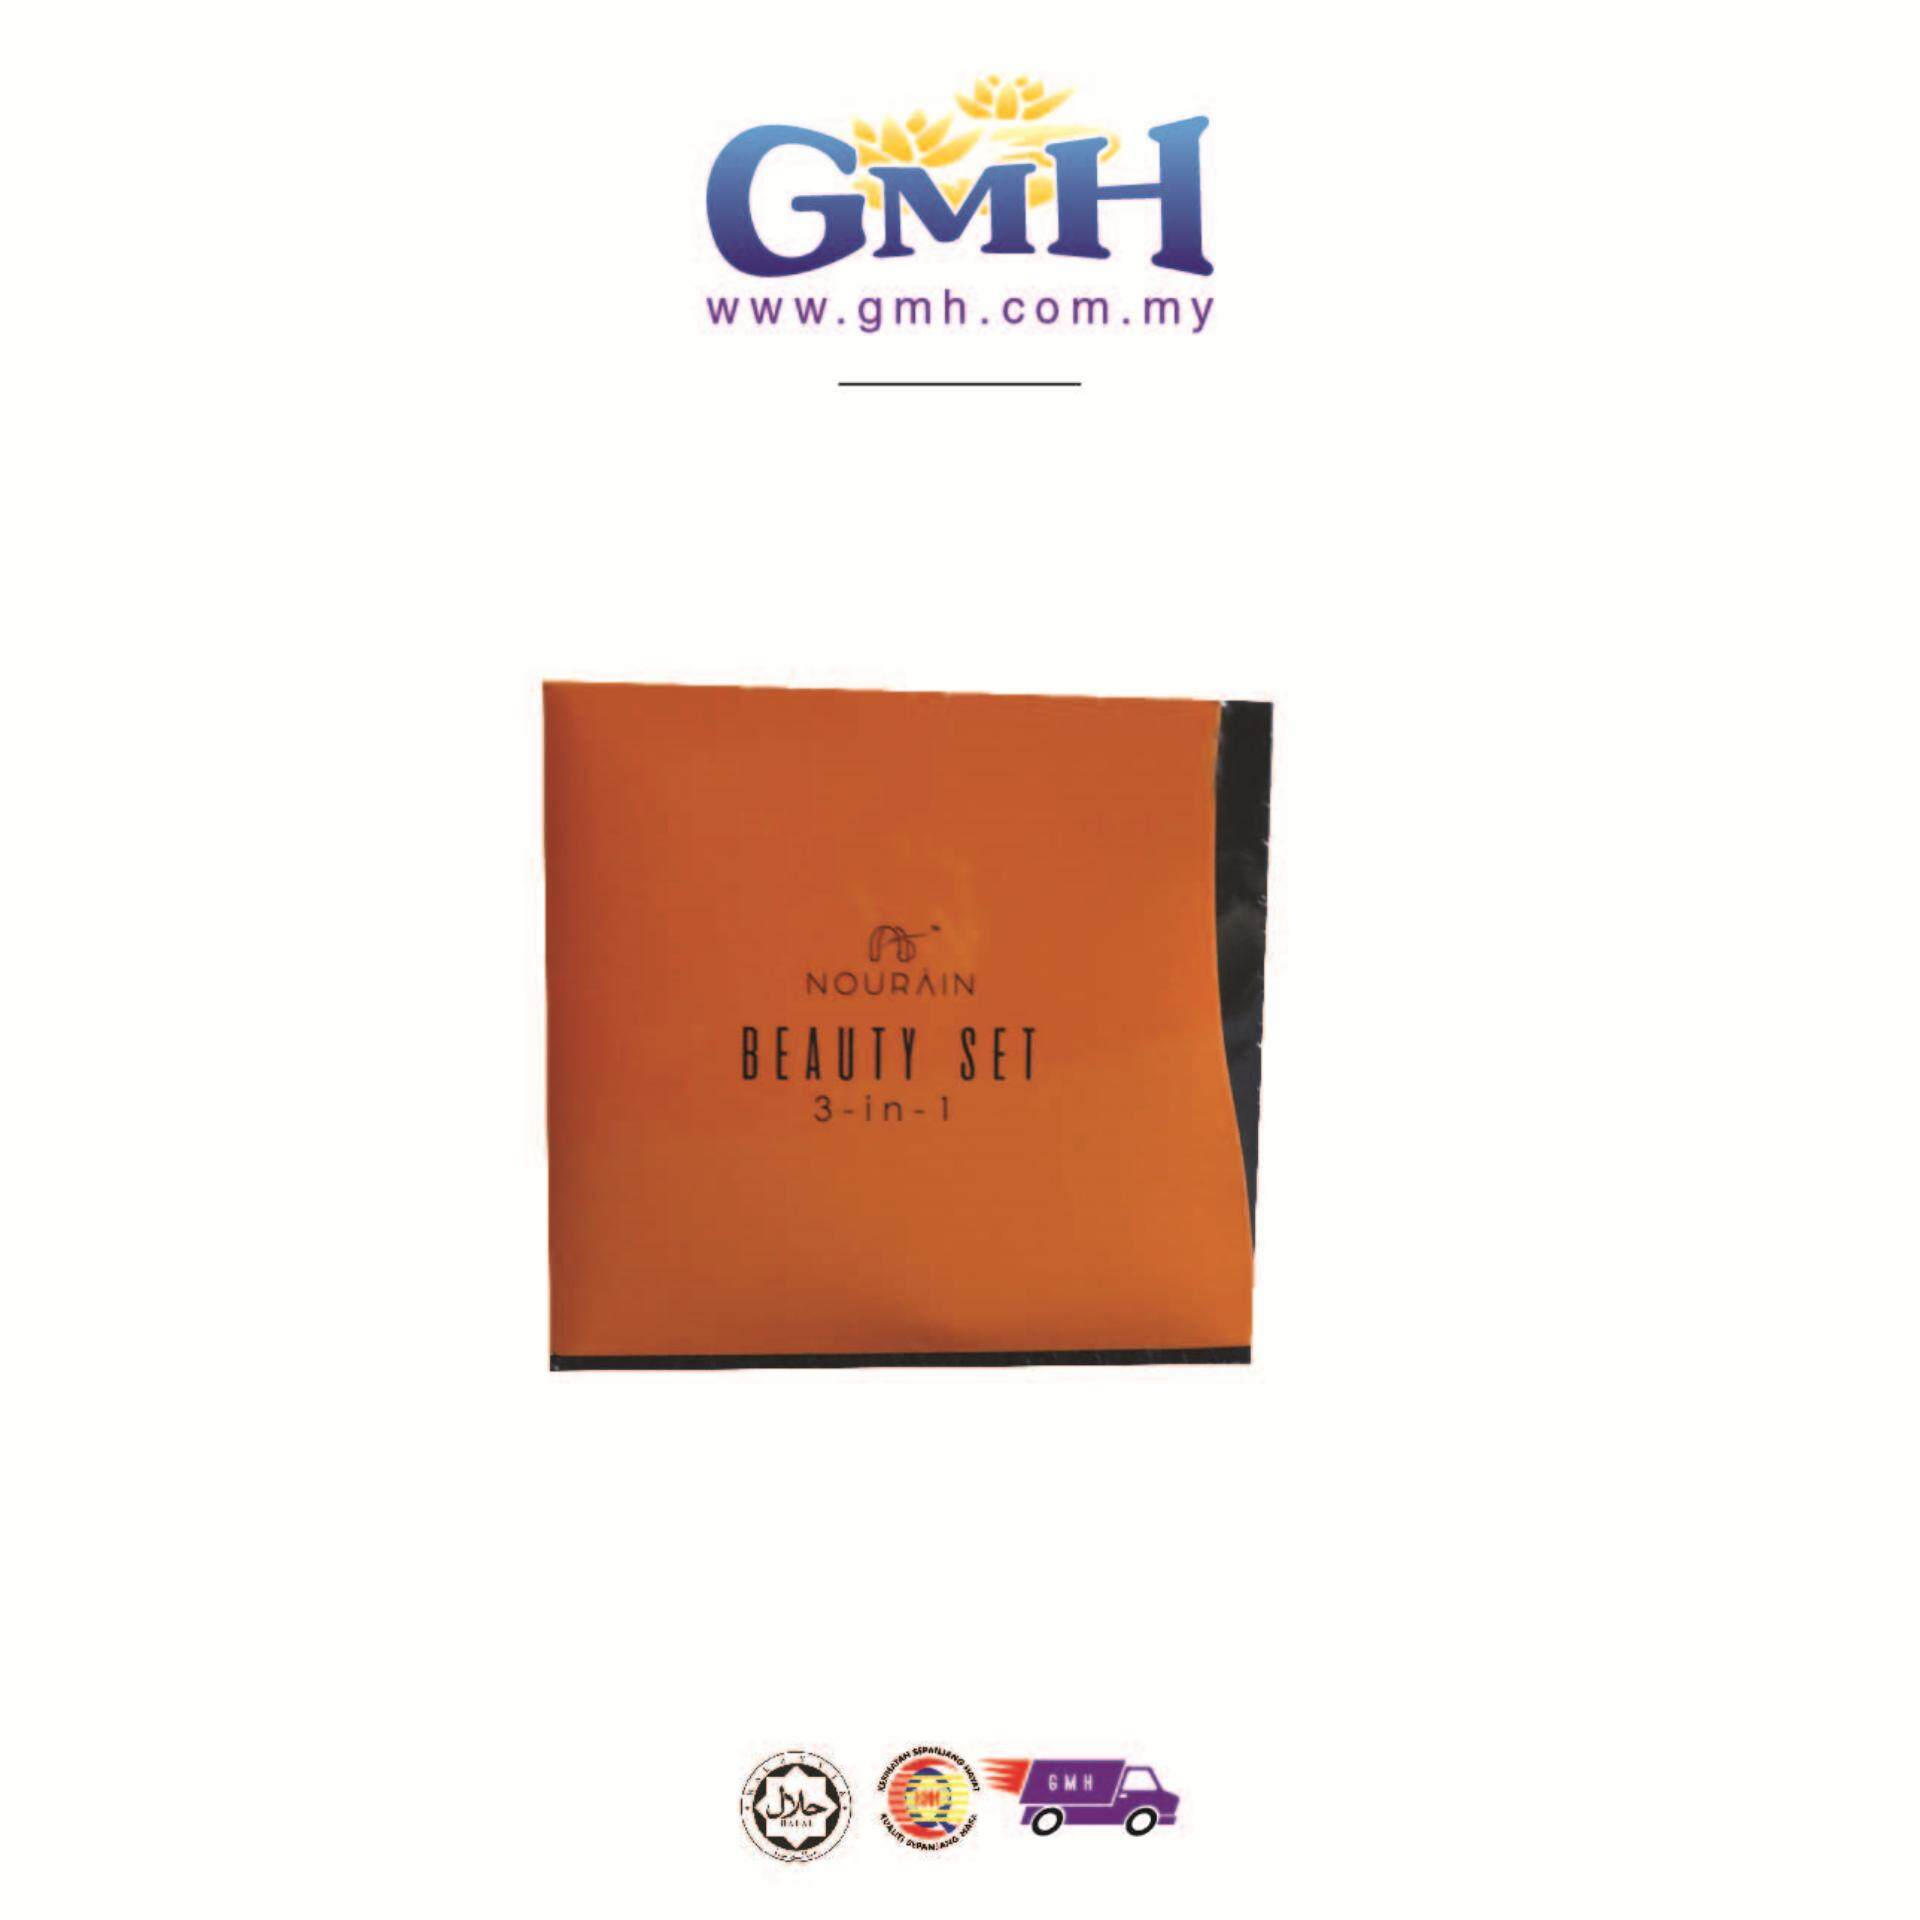 Gmh Health Beauty New Arrival Susu Bear Breand Plus Kurma Nour Ain Set 3 In 1